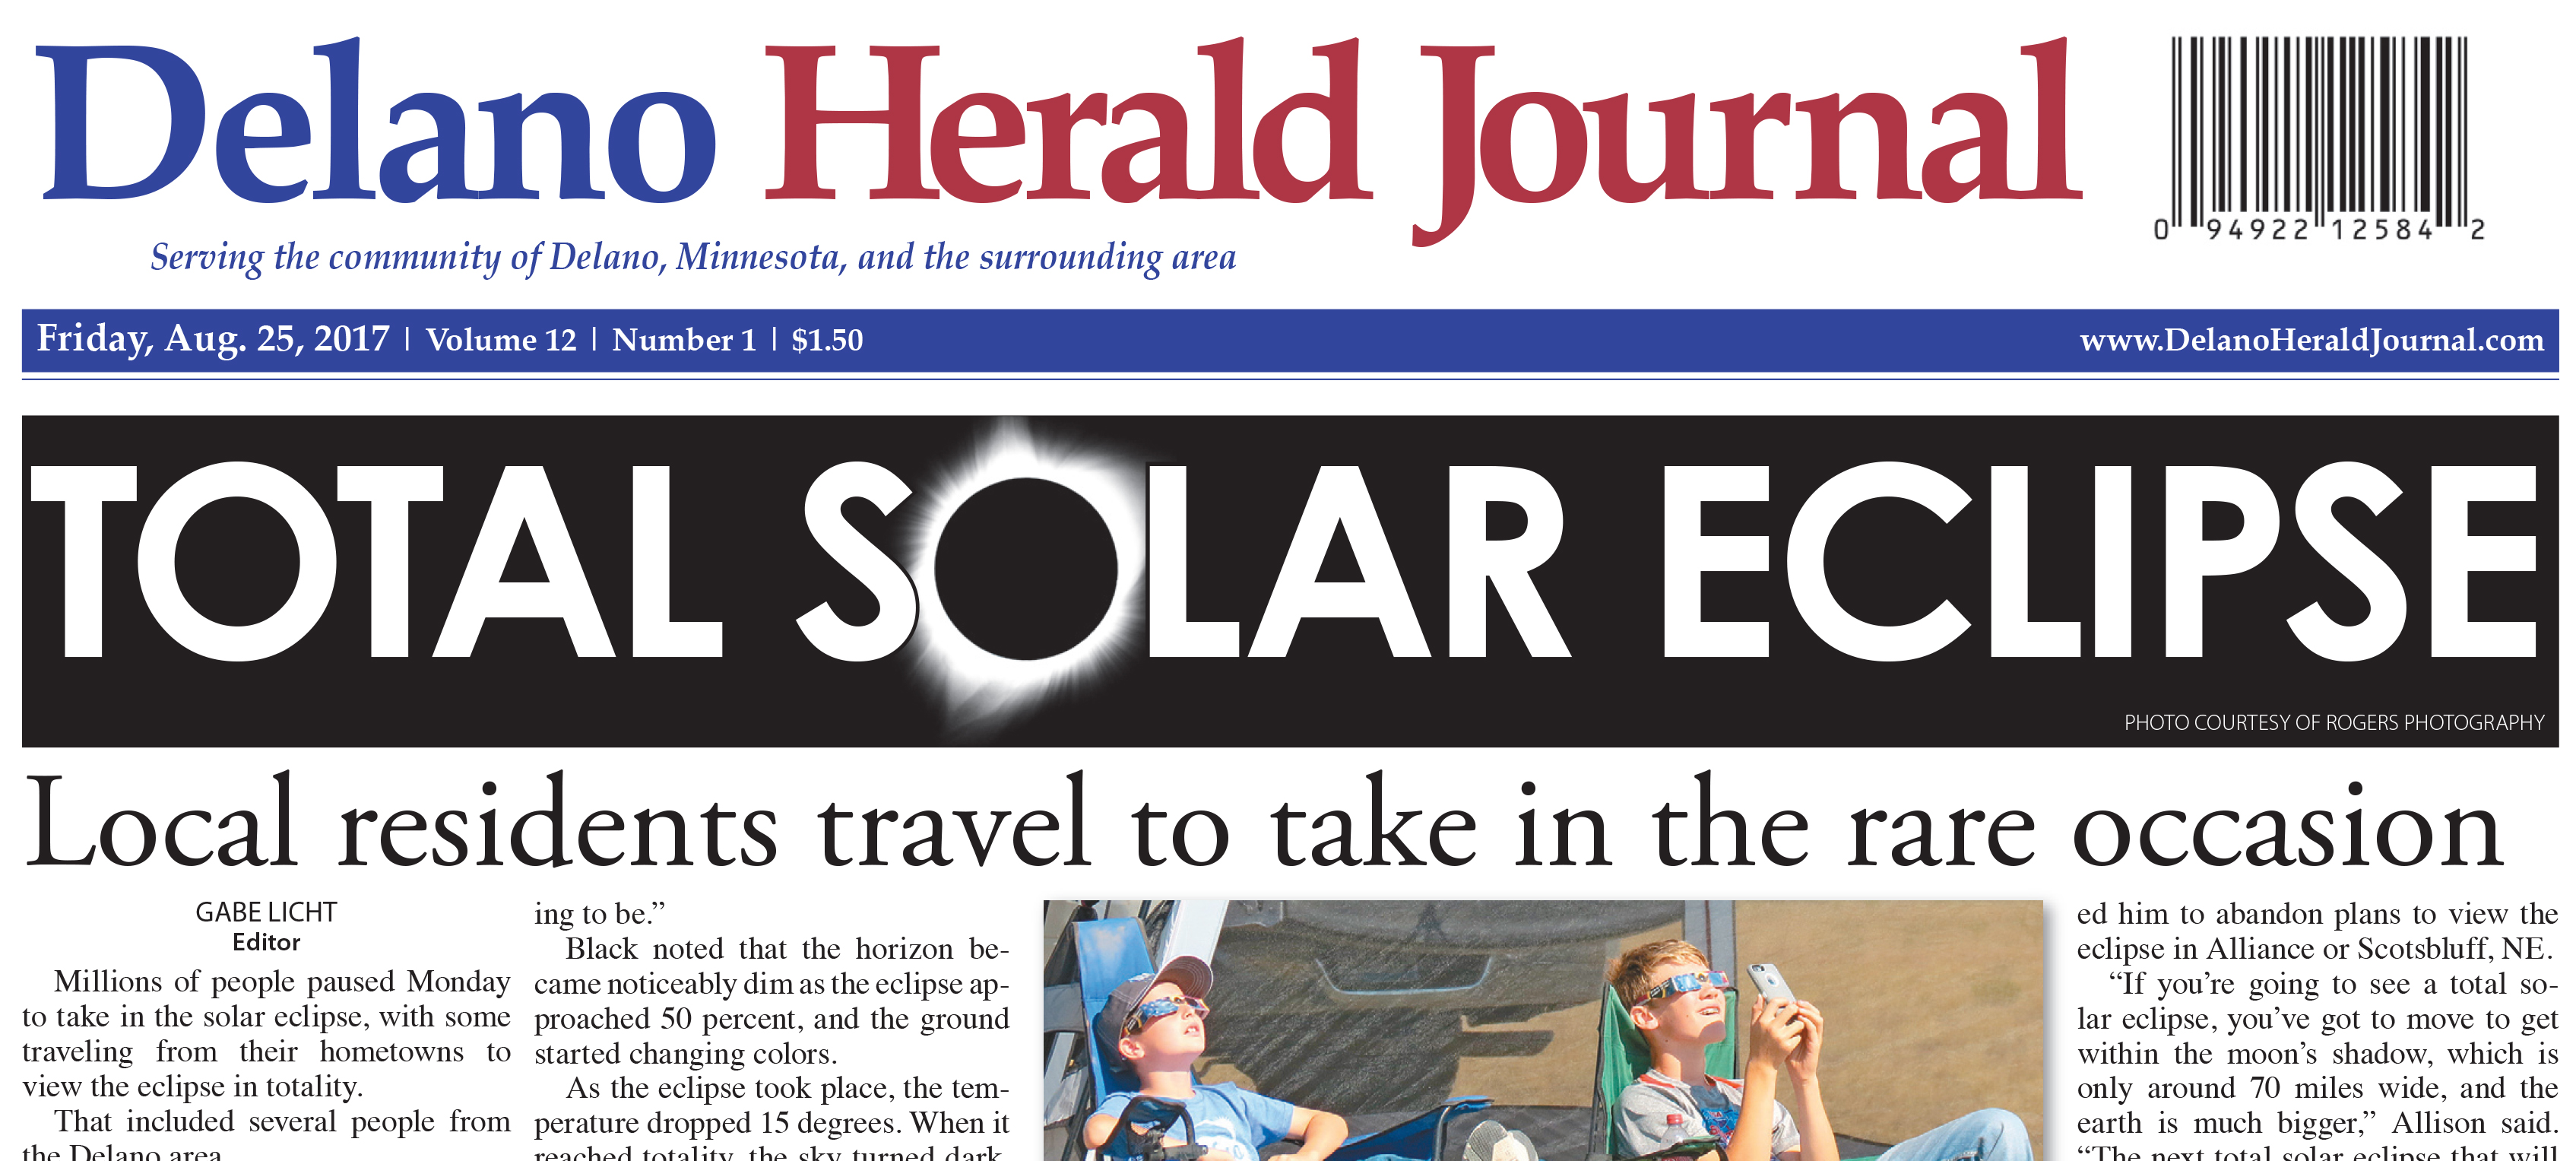 Delano Herald Journal - Eclipse image